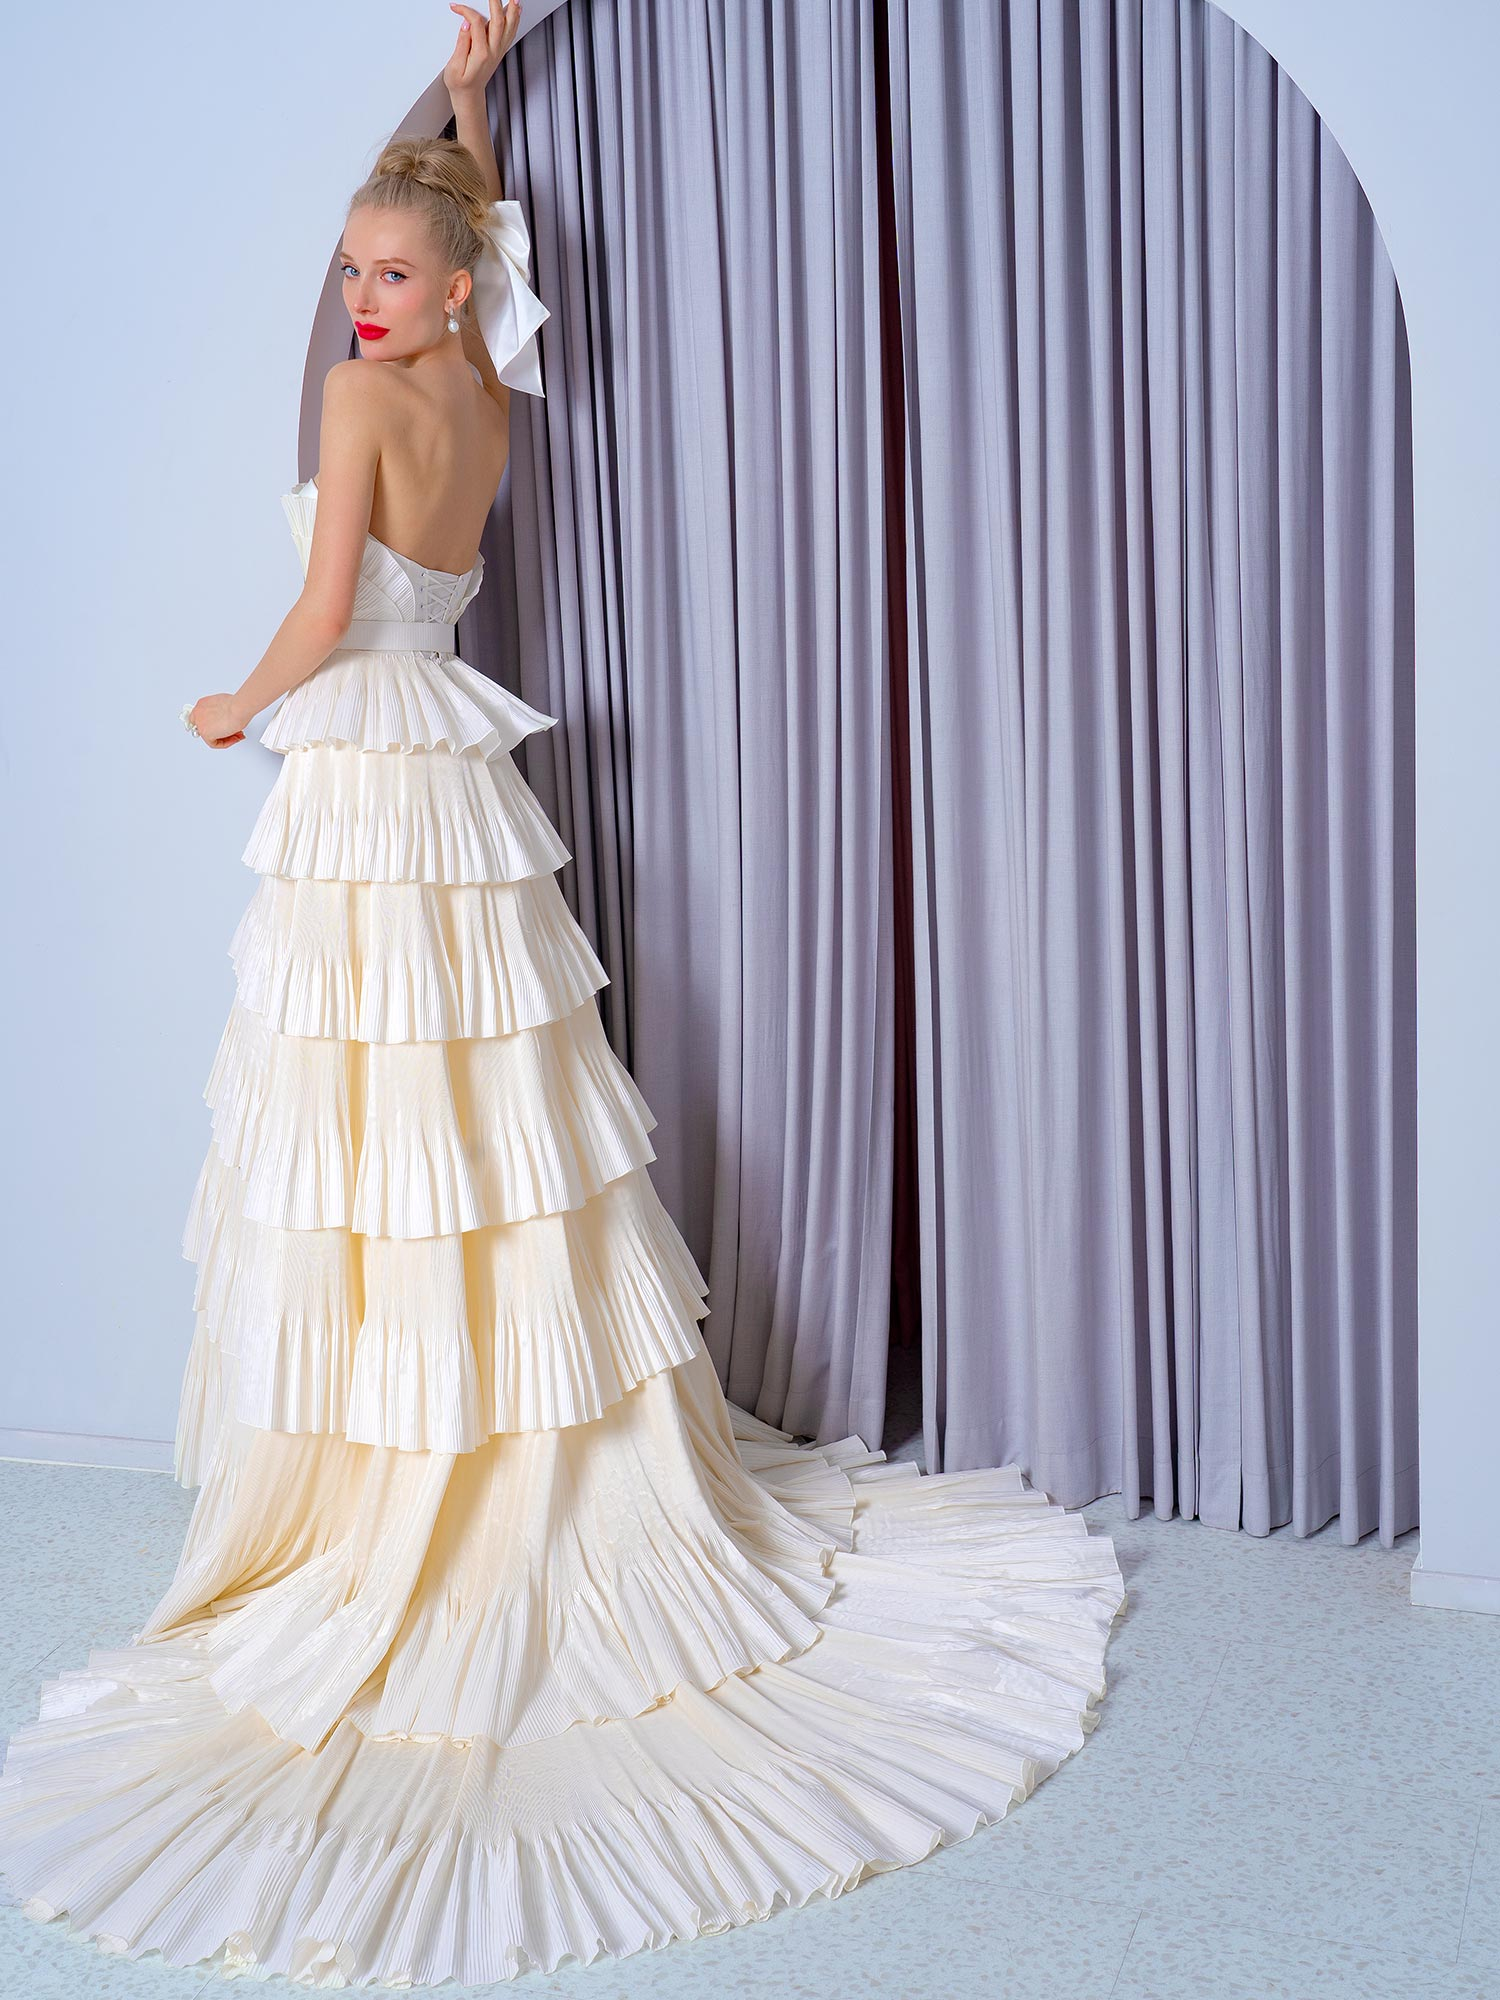 Style #2229b, Taffeta tiered A-line wedding dress, available in ivory